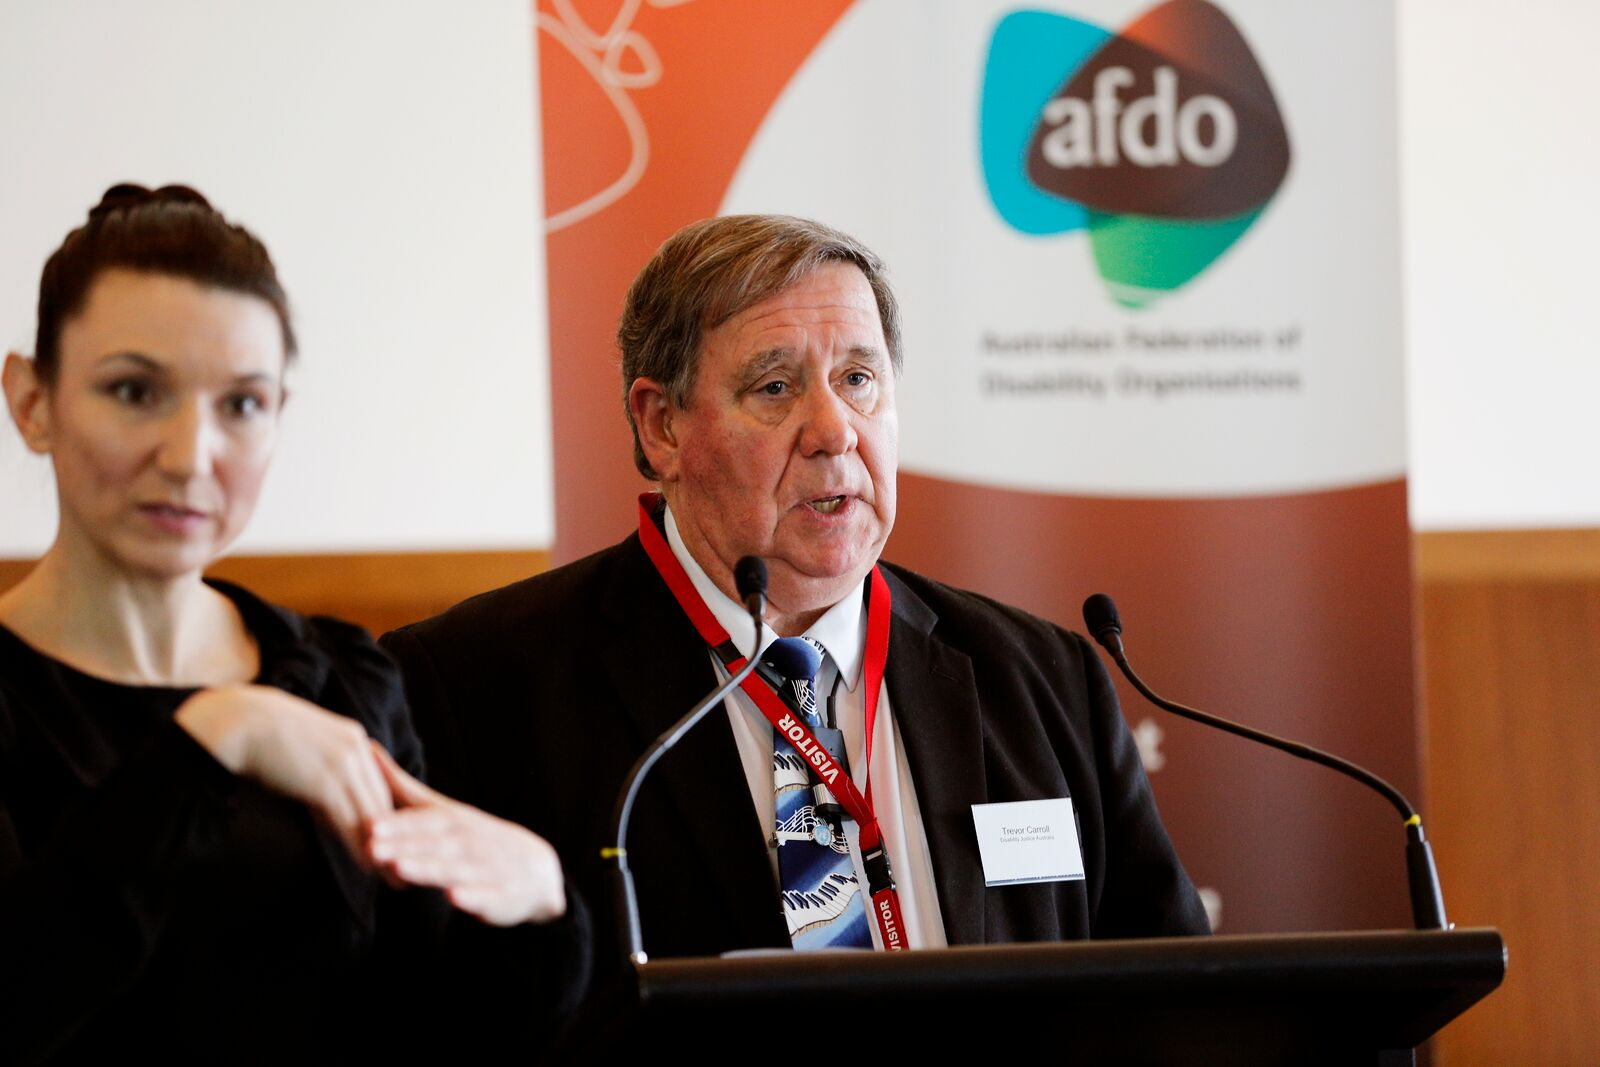 Vice President, Trevor Carroll standing at lectern, speaking into microphone. On the left of Trevor is an Auslan interpreter, and behind Trevor is the AFDO Banner with the AFDO logo.